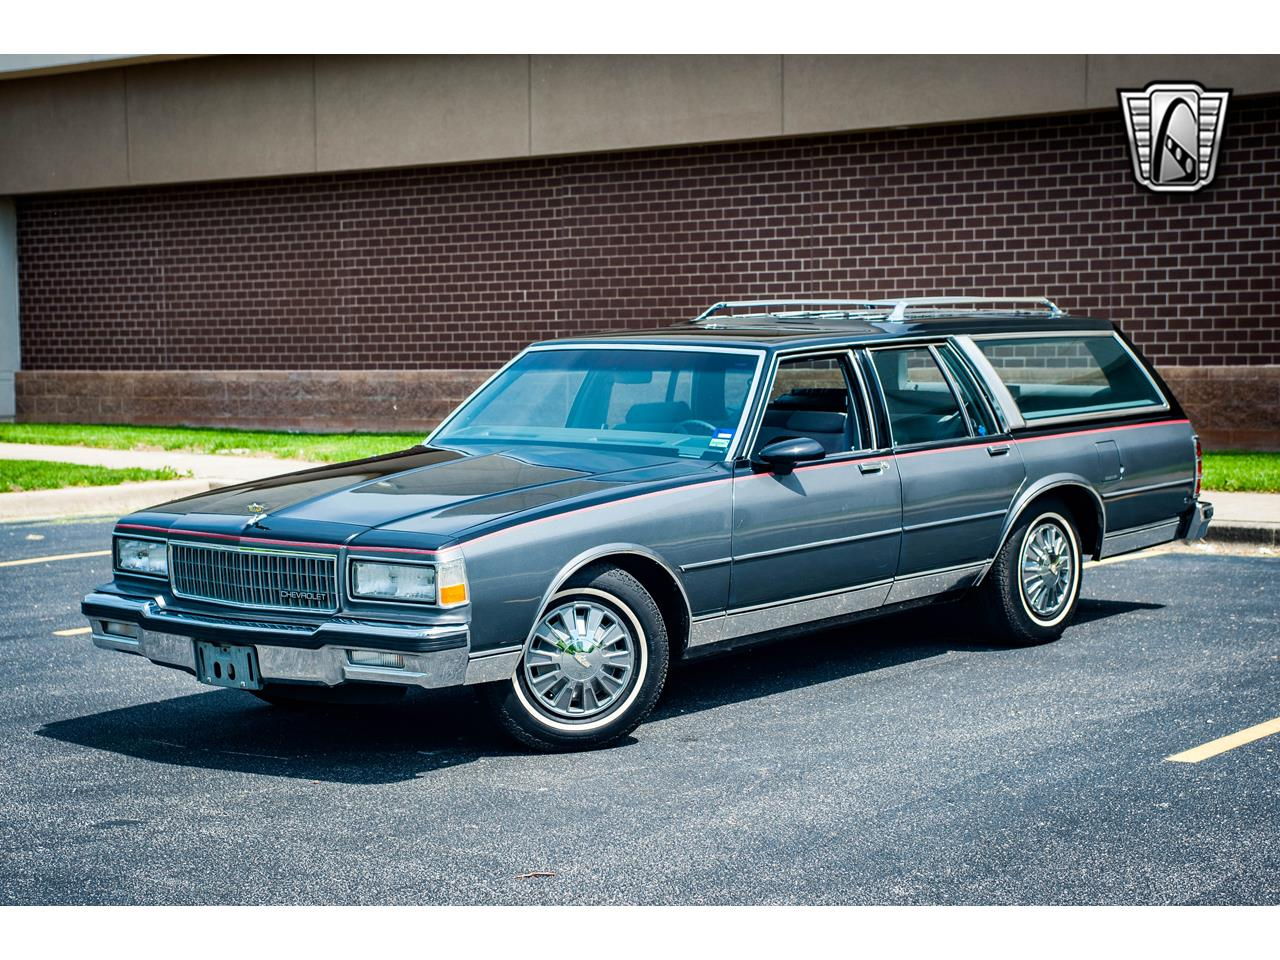 Large Picture of '89 Chevrolet Caprice located in Illinois Offered by Gateway Classic Cars - St. Louis - QB9K